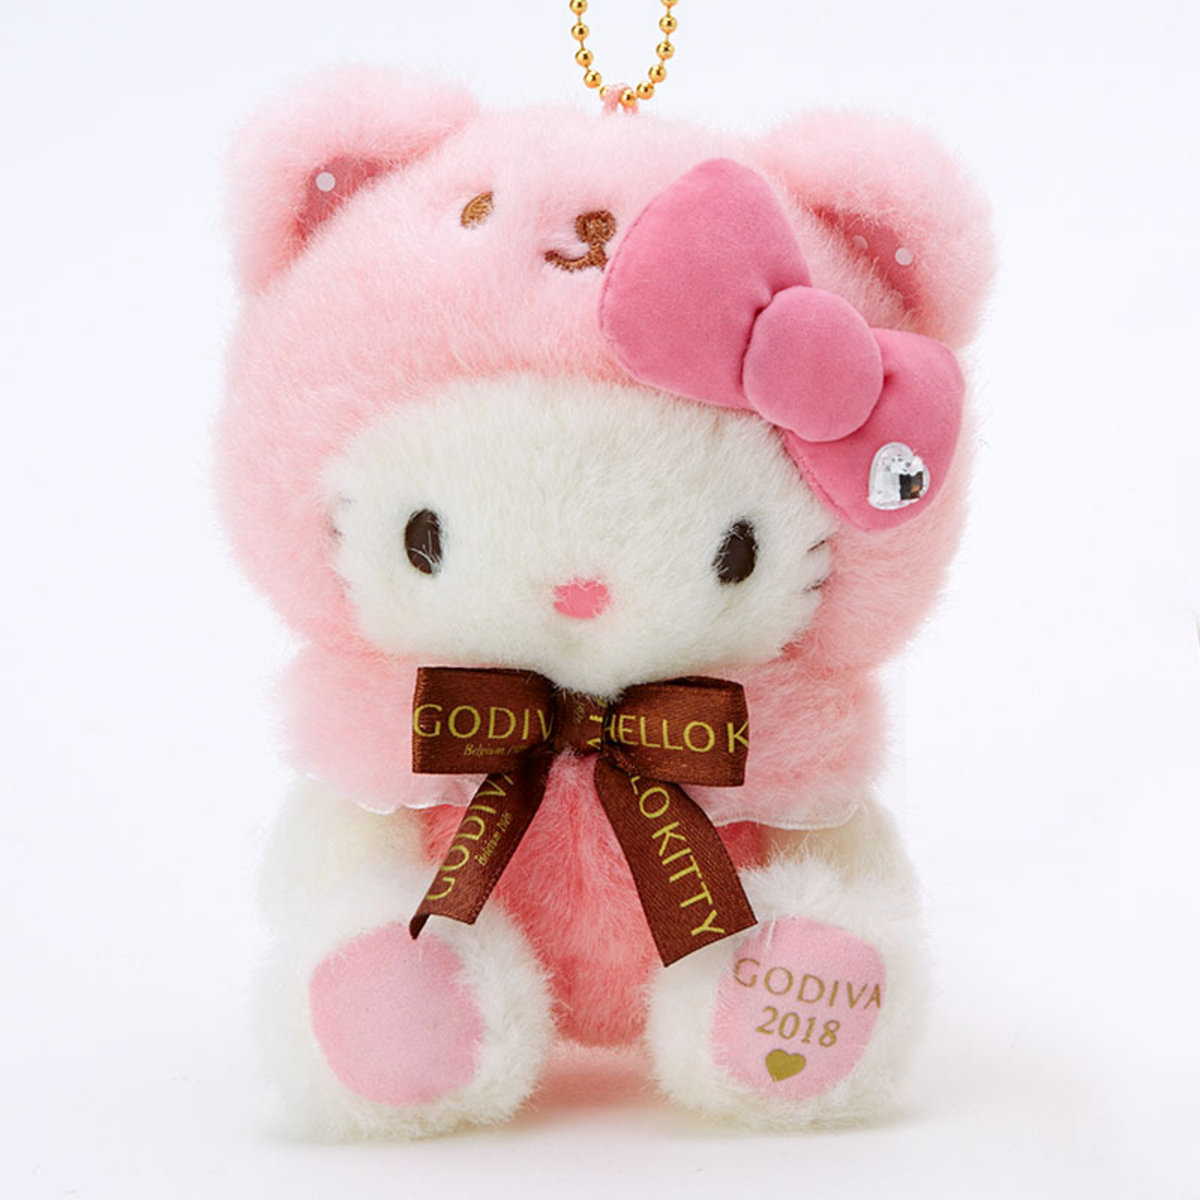 f06b92d35 SANRIO X GODIVA | Sanrio X GODIVA 2018 - Hello Kitty plush key ring ...